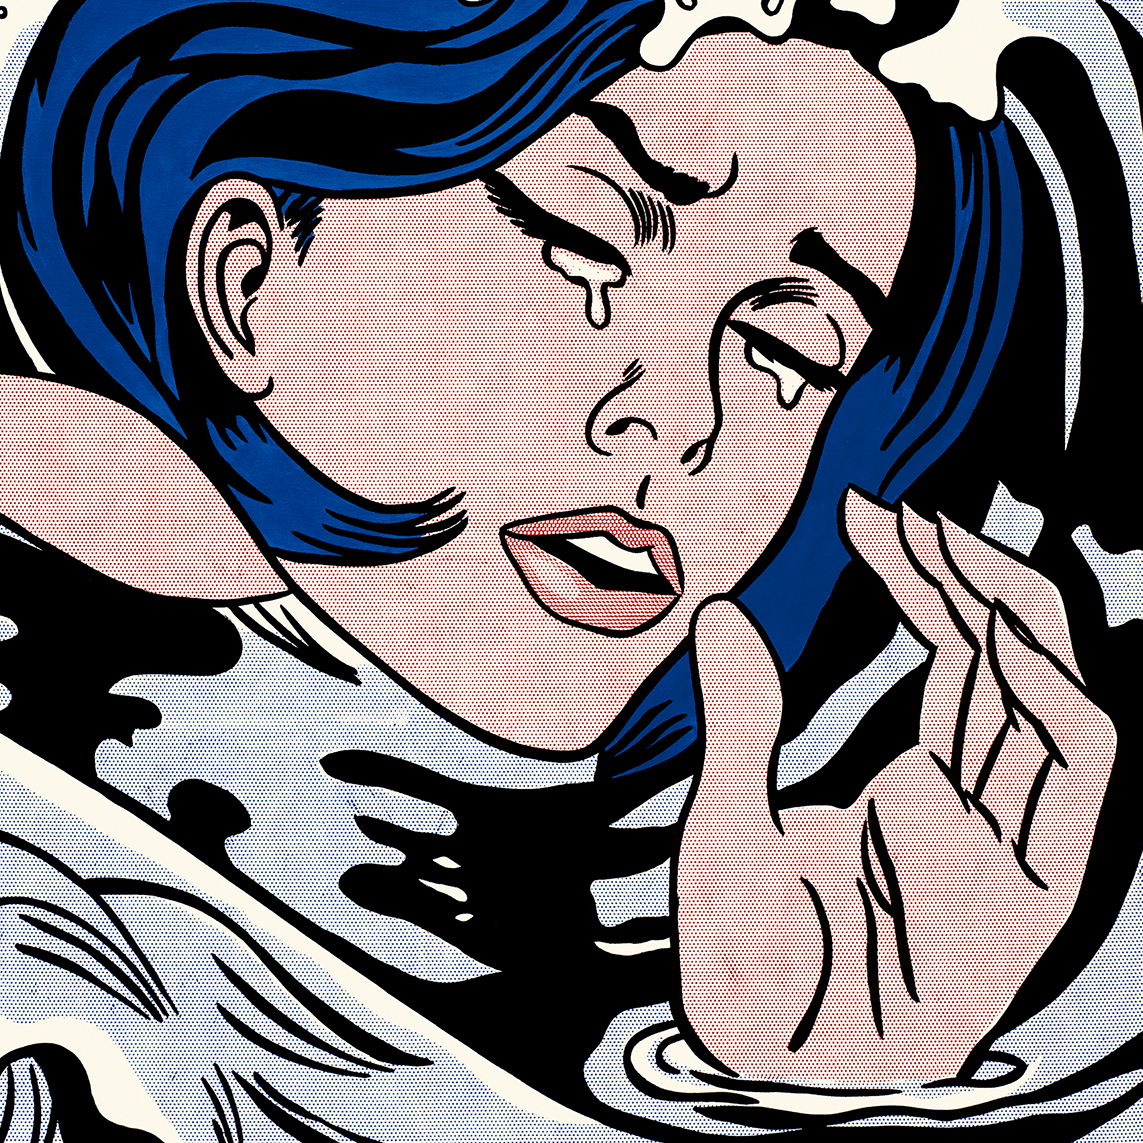 """I don't care! I'd rather sink -- than call Brad for help!"" laments Lichtenstein's 1963 Drowning Girl."